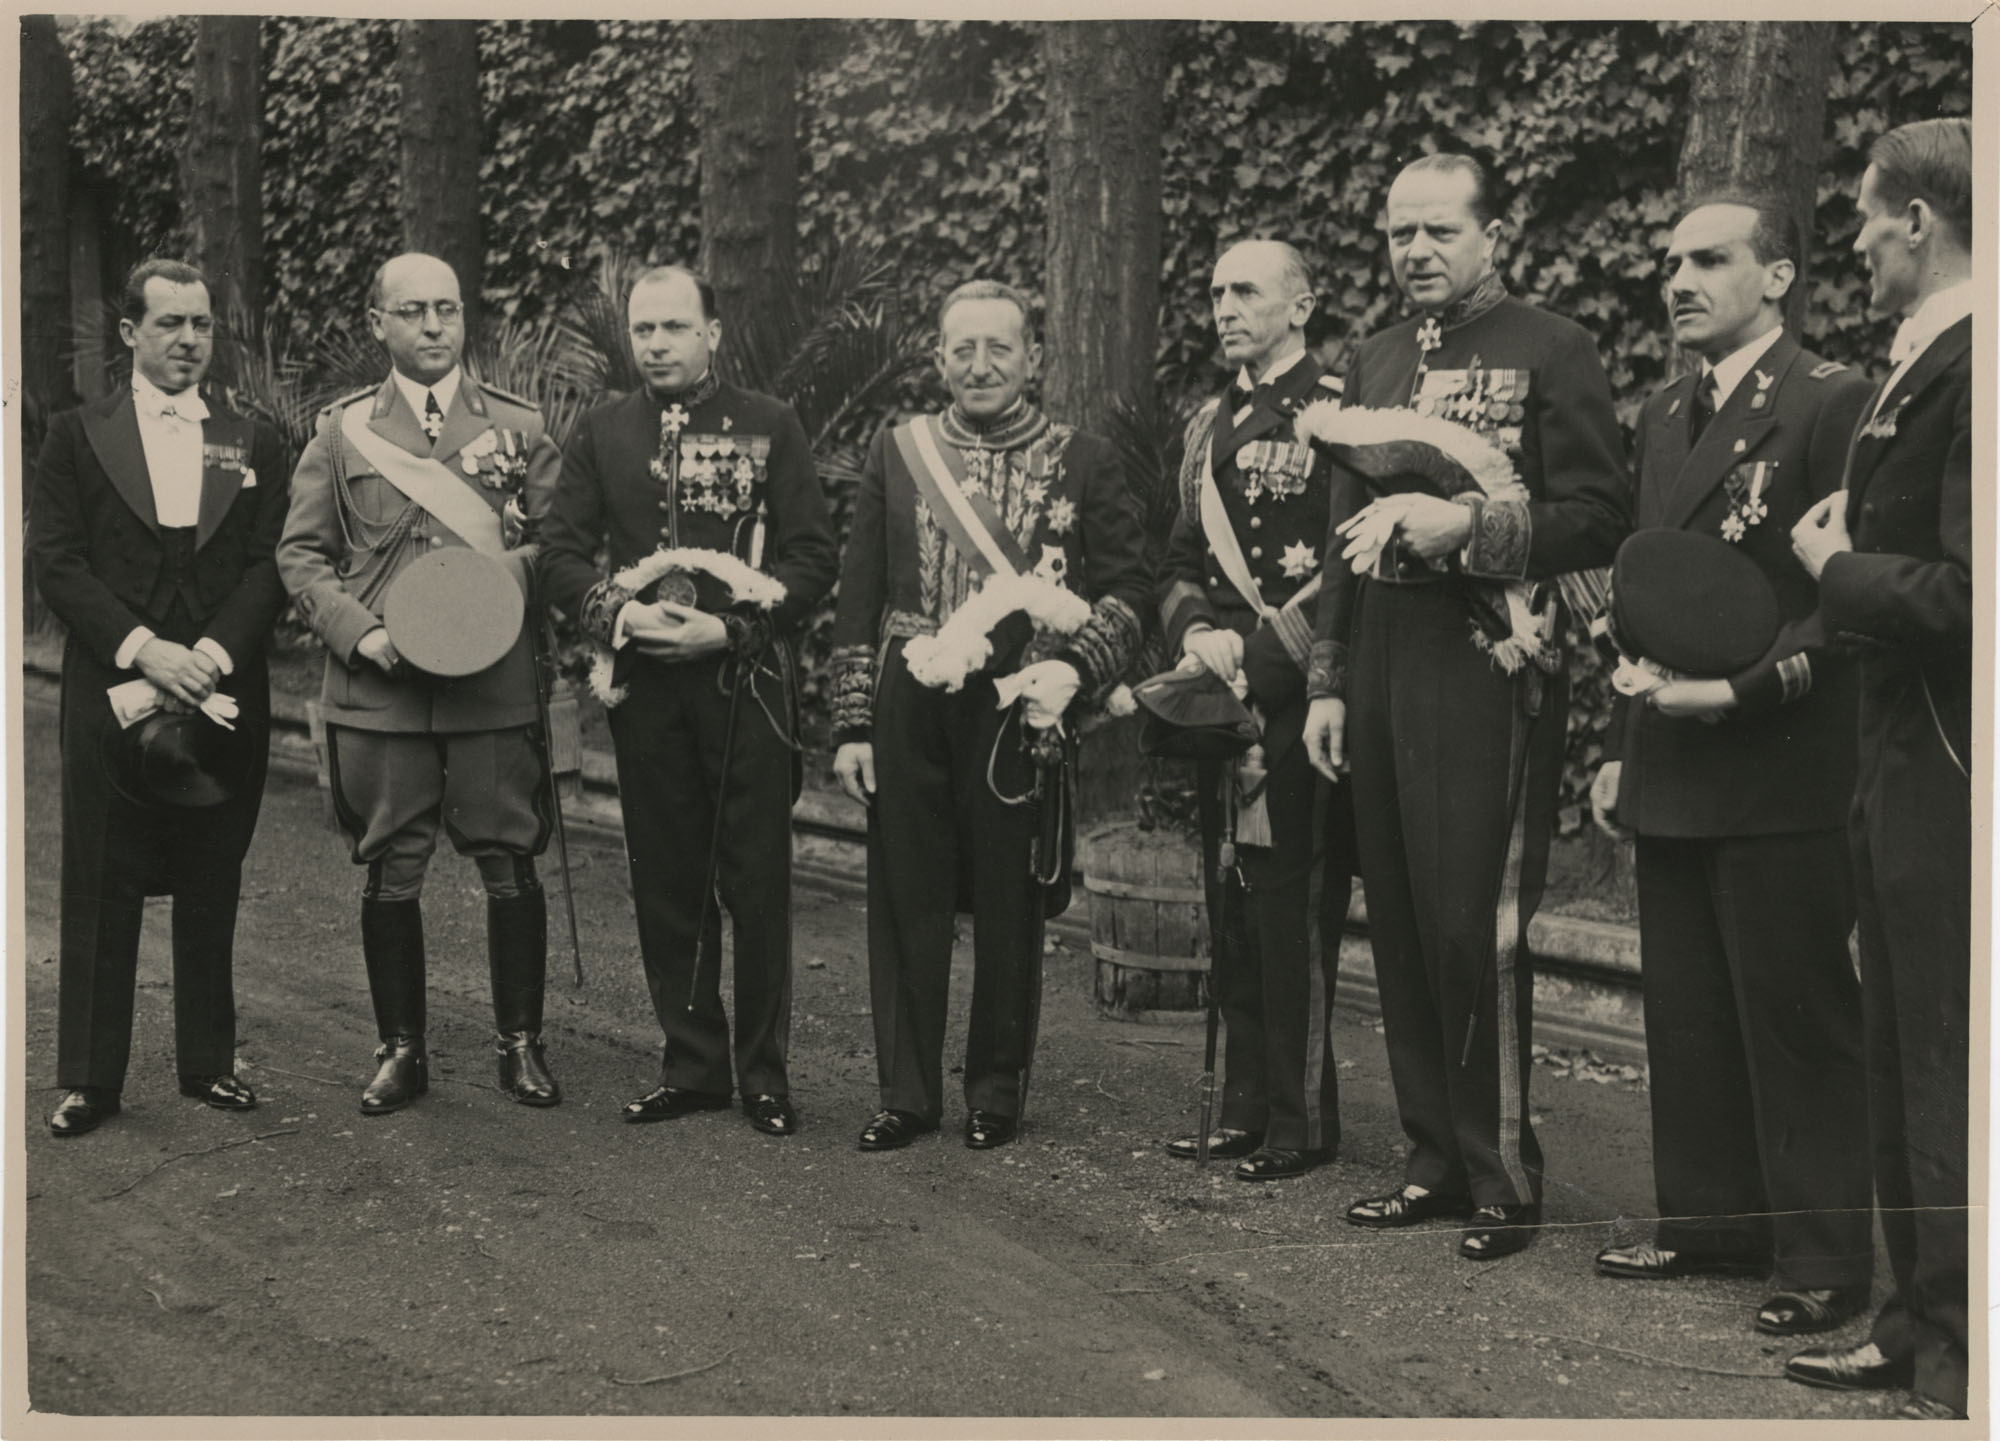 Mario Pansa and military officials in full dress uniform, Photograph 1